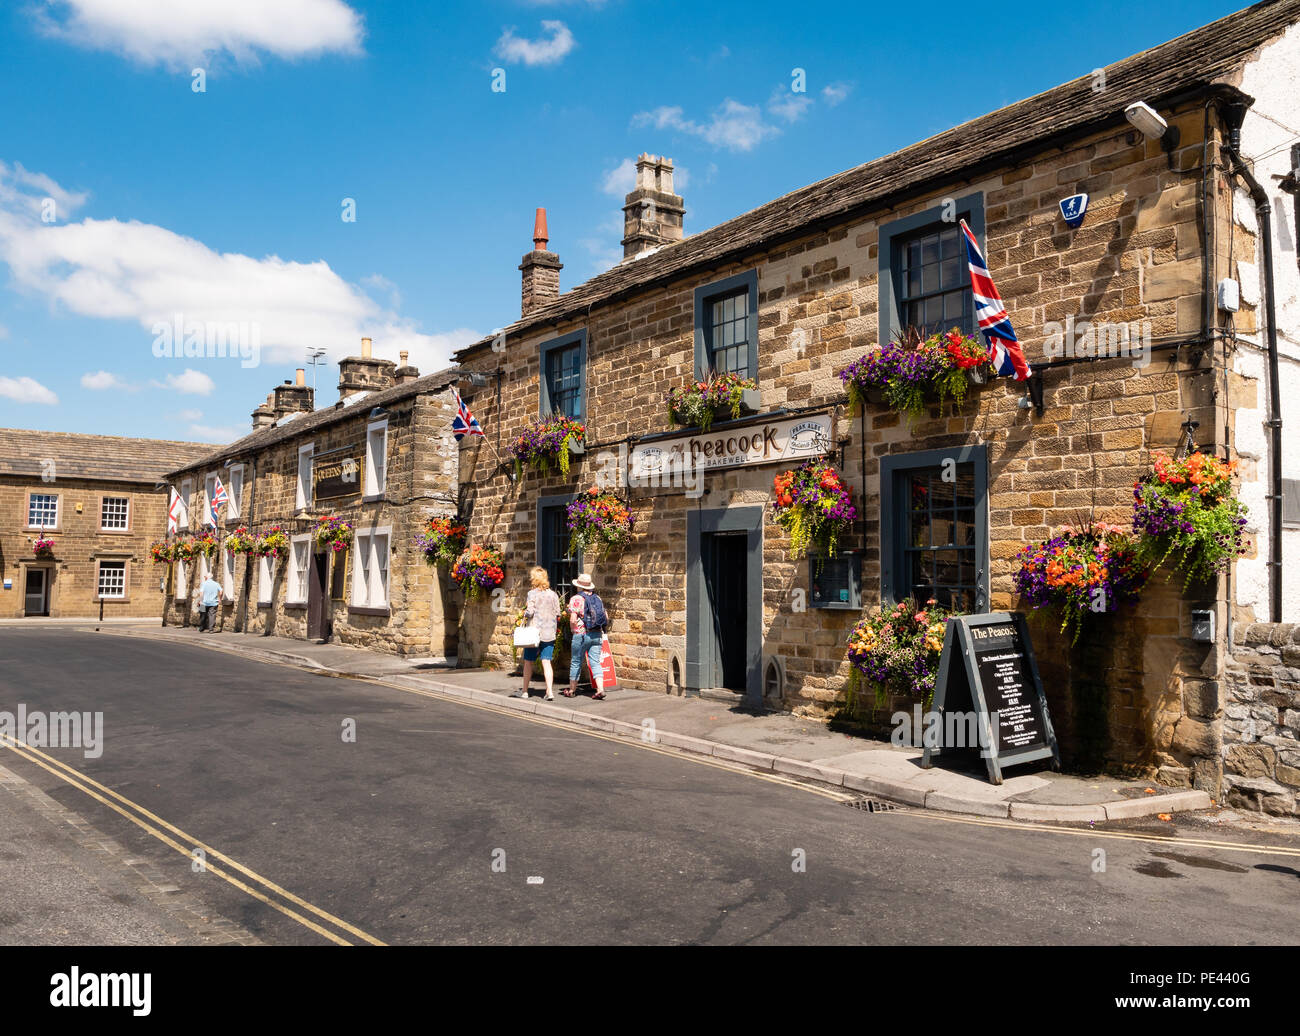 The Peacock Inn in the town centre of Bakewell in the Derbyshire Peak District UK - Stock Image